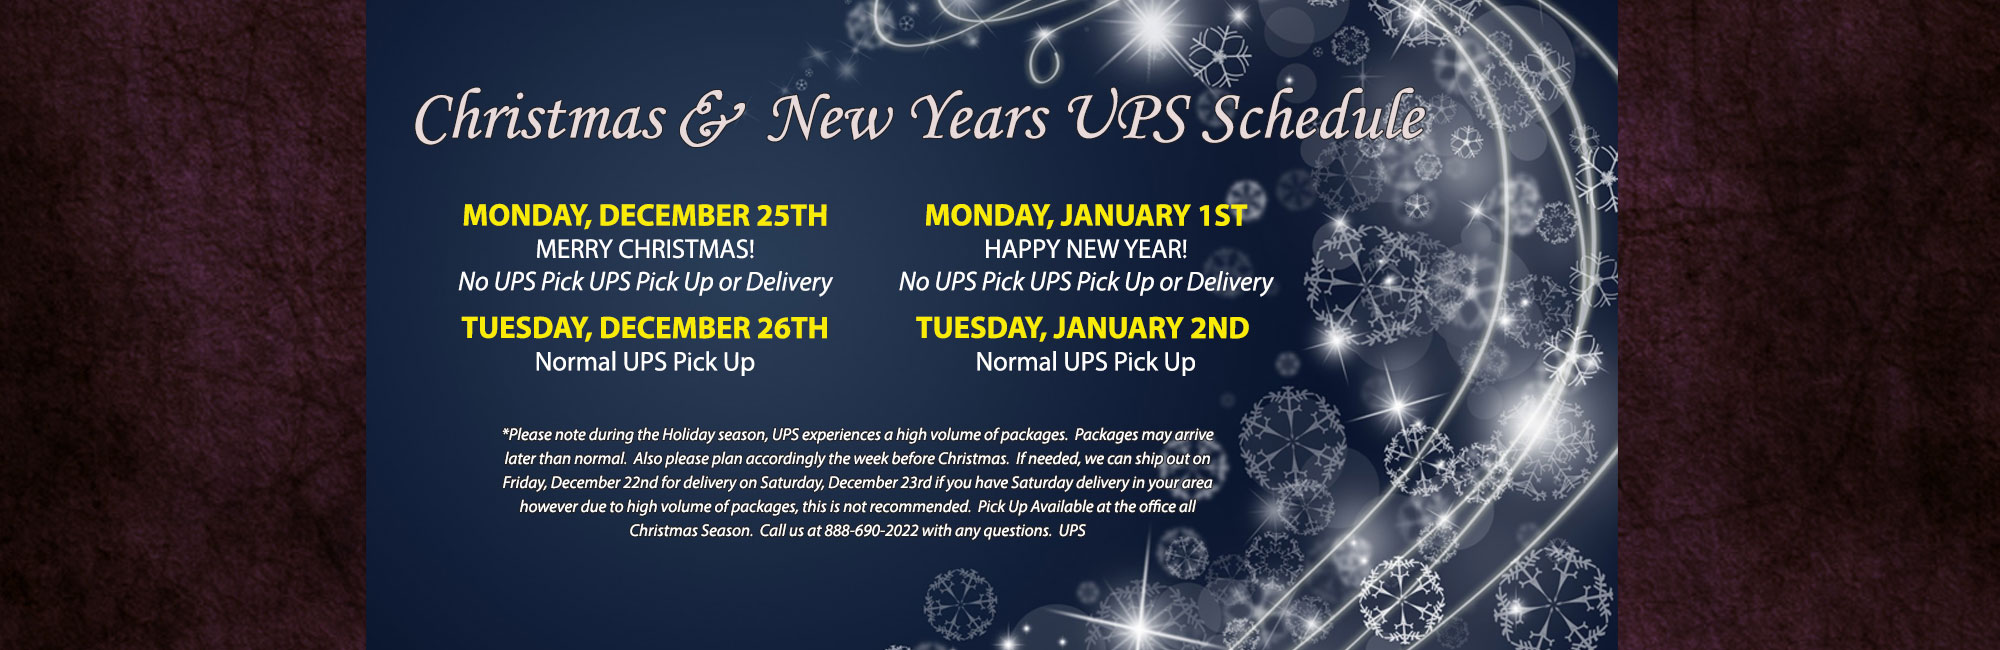 Christmas/New Years UPS Schedule